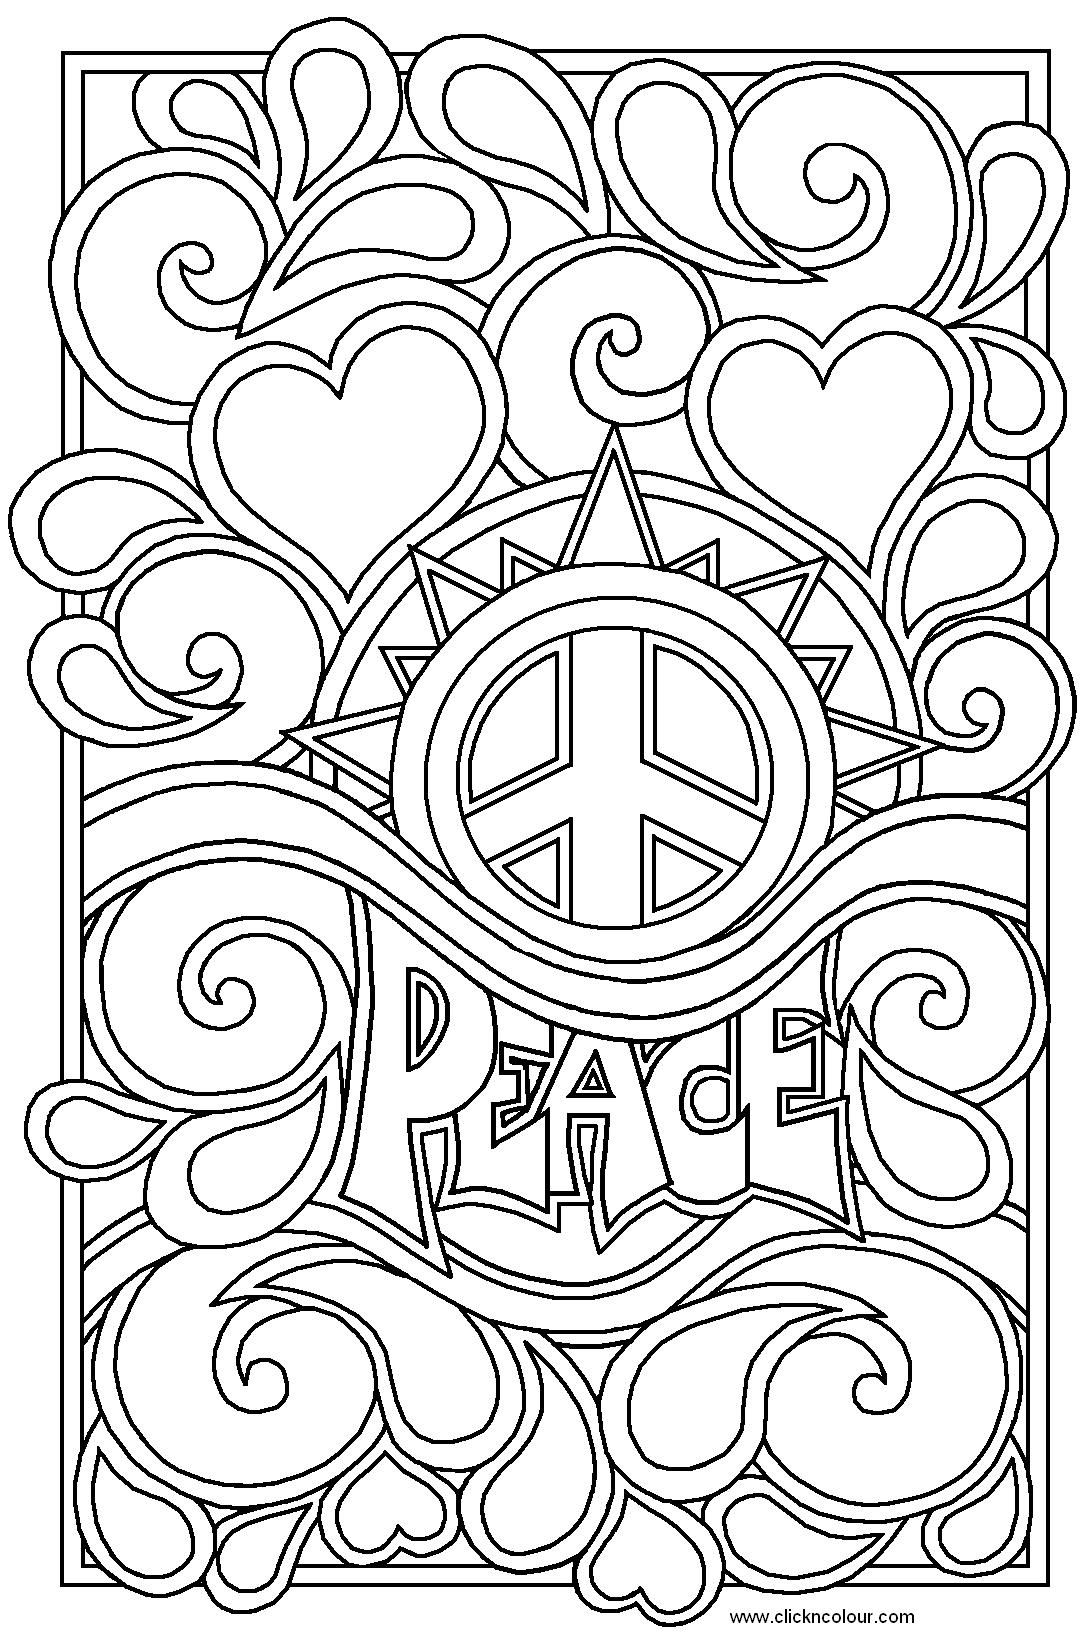 Colouring designs for older kids and adults www Coloring book for adults free download